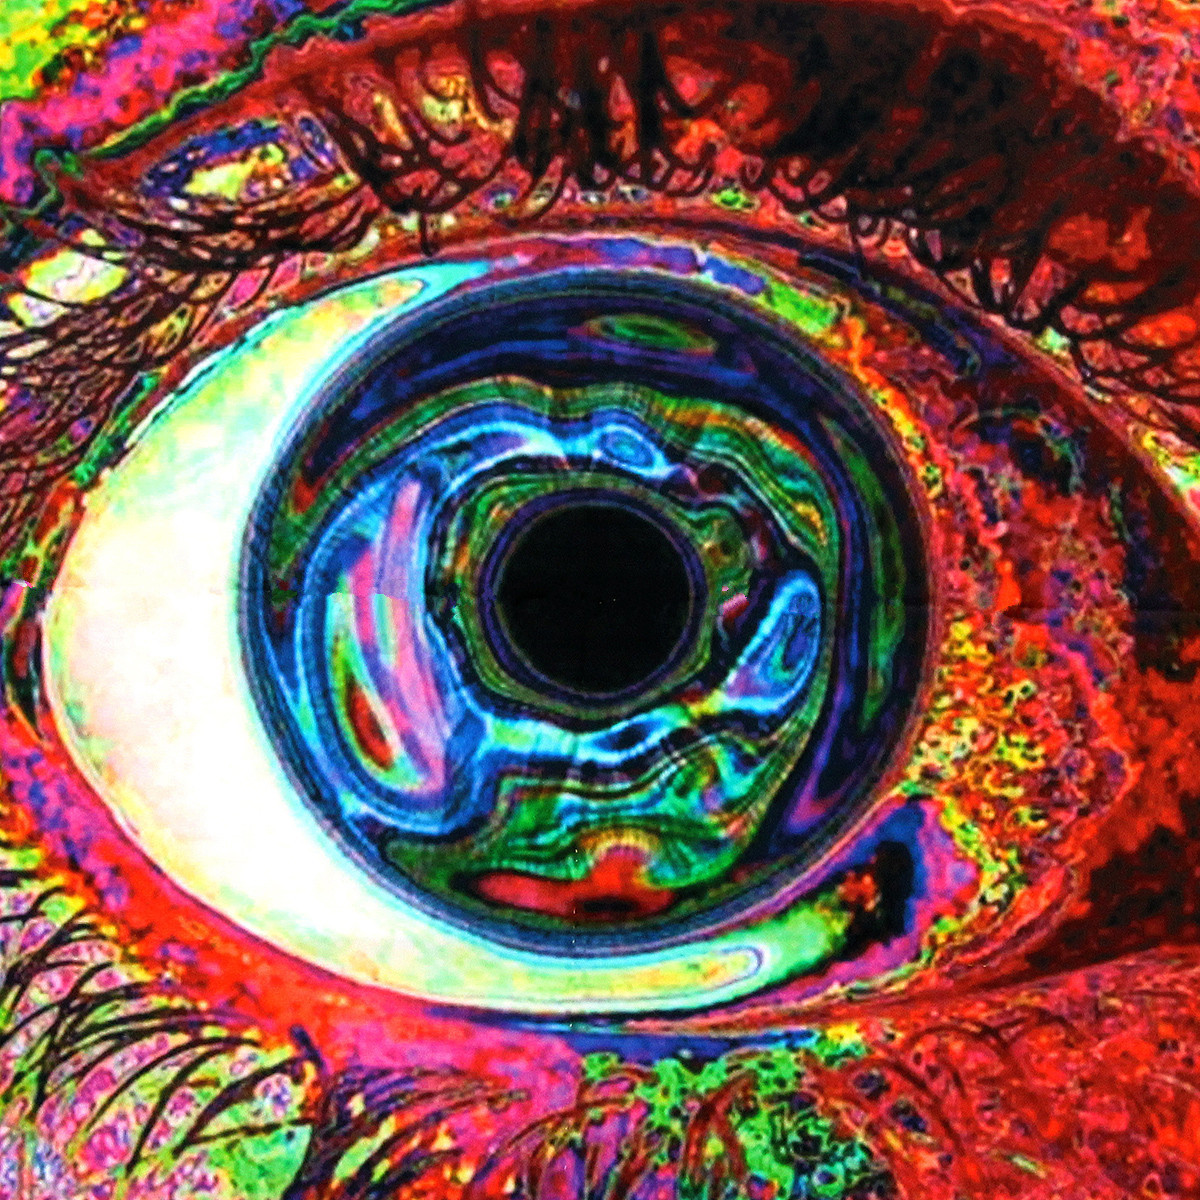 psychedelic trippy colorful eye art silk cloth poster 24 x